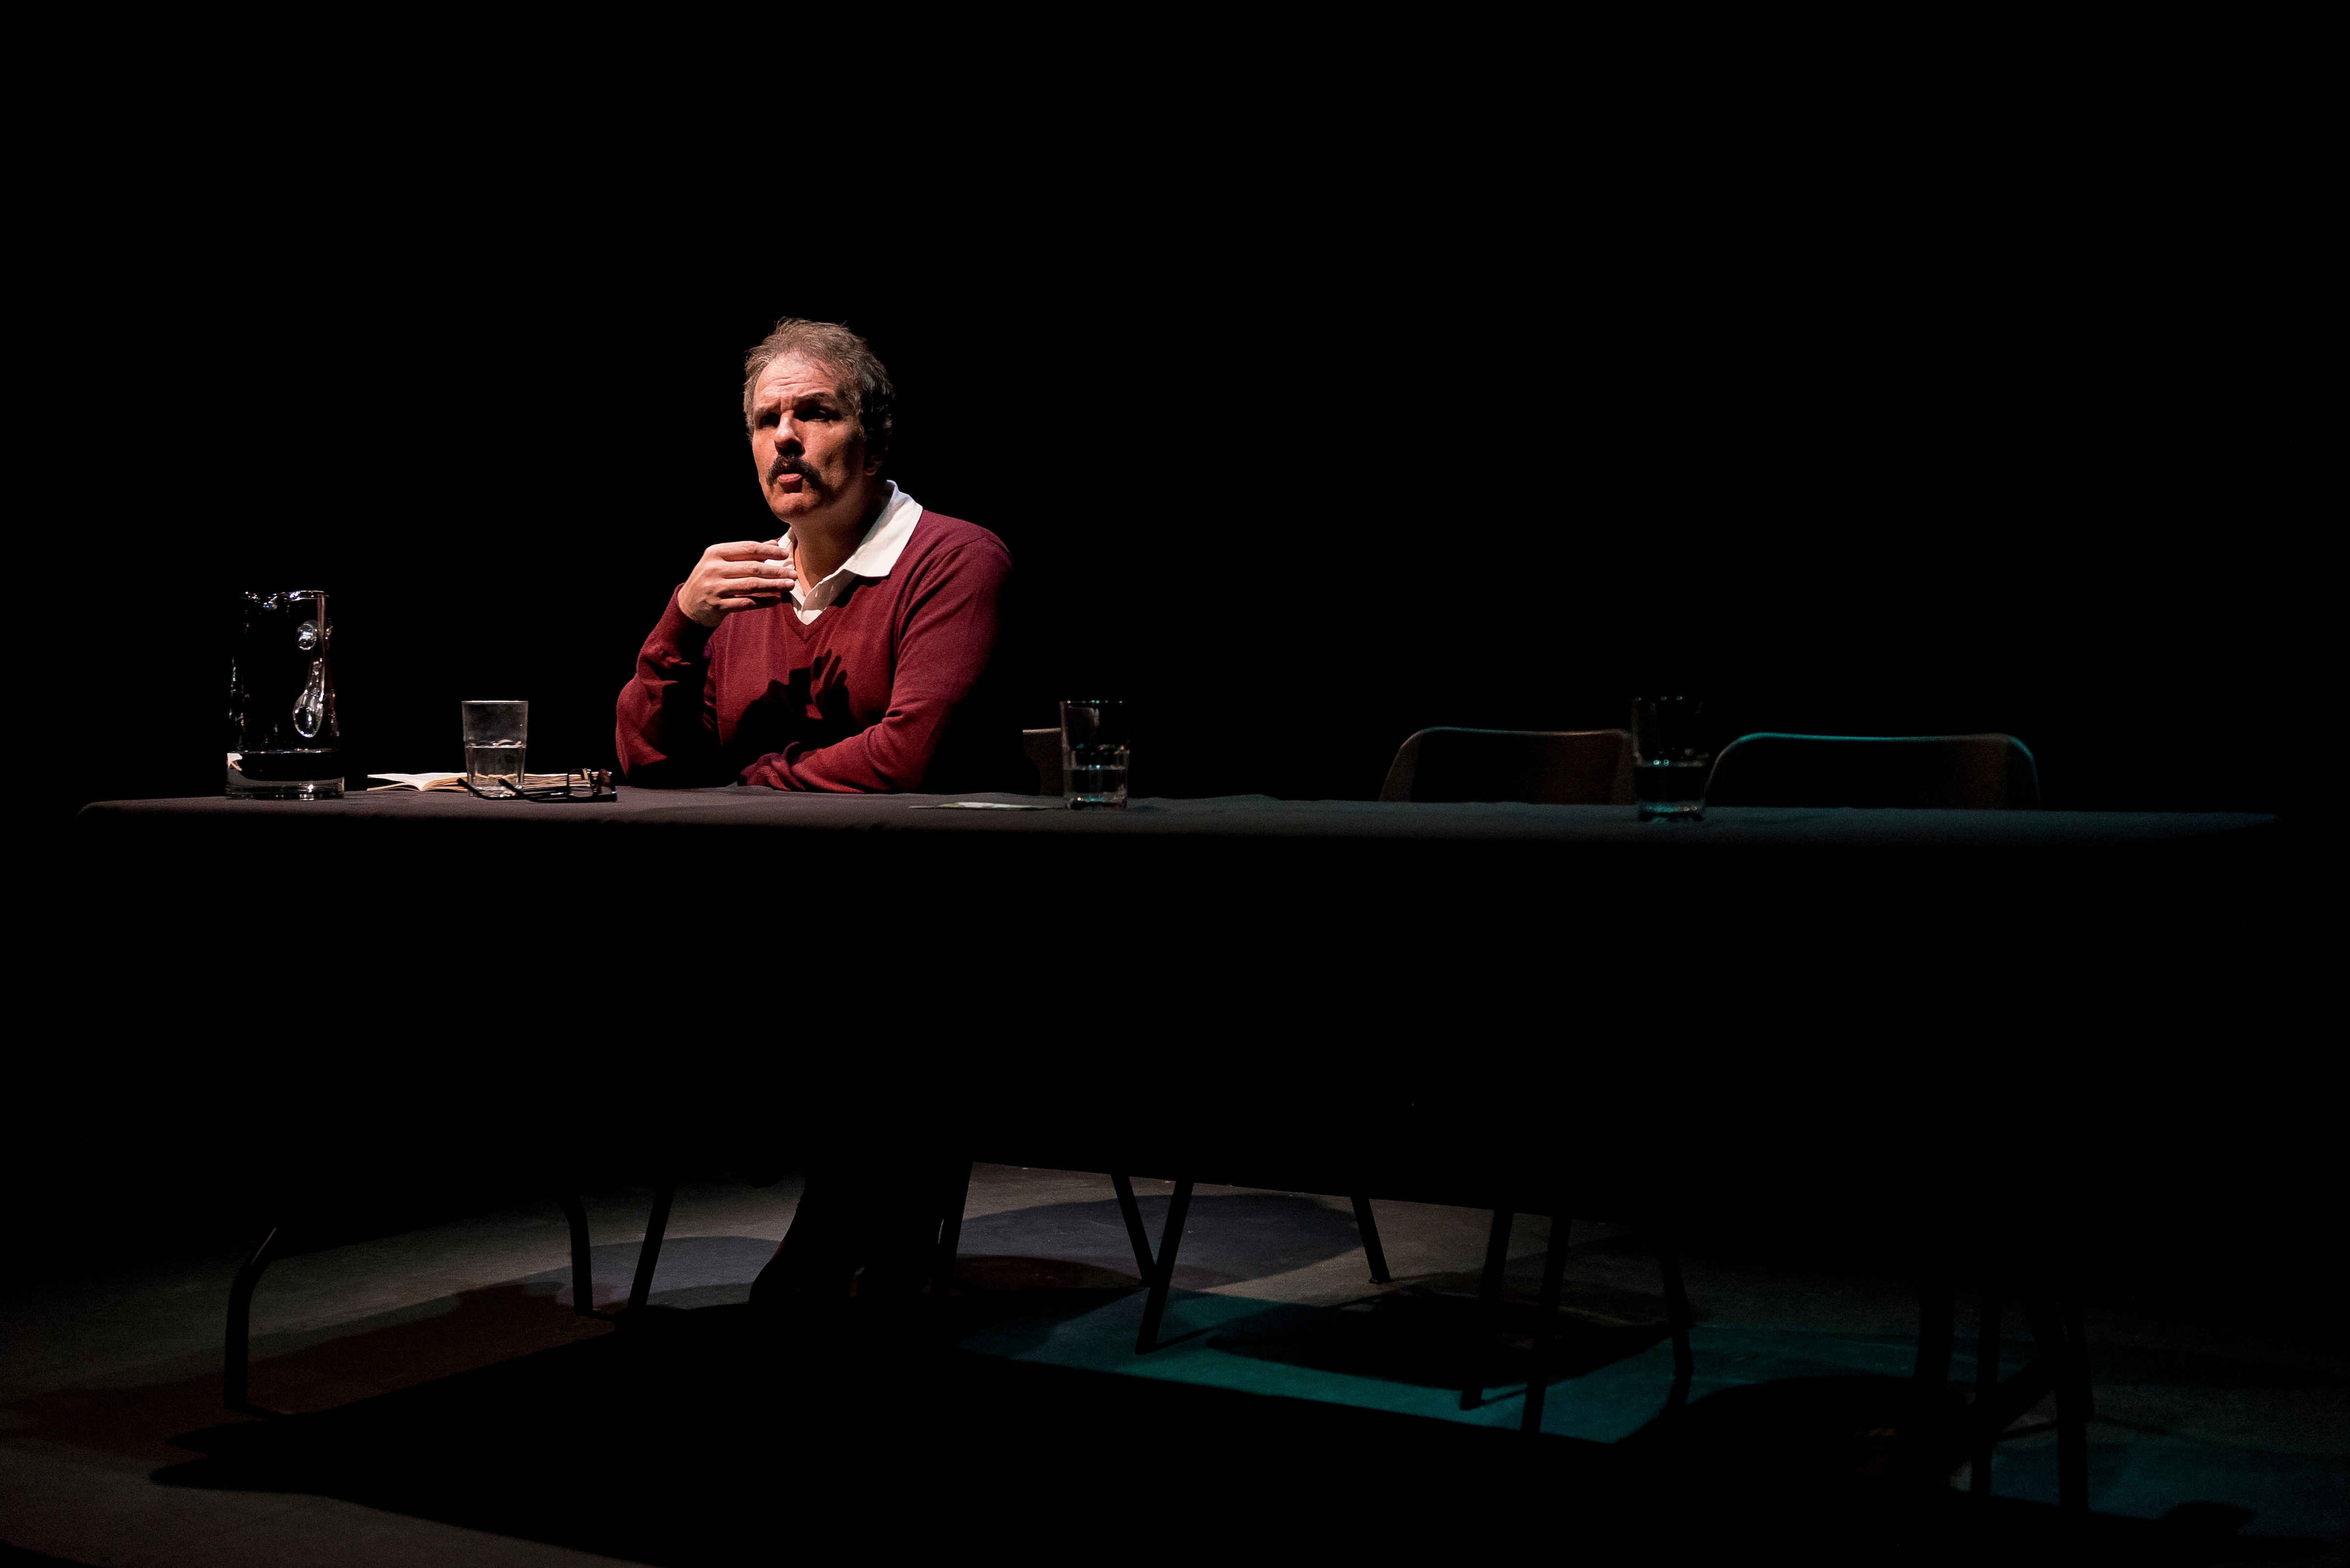 BWW Review: THE DESIGNATED MOURNER provokes at Catastrophic Theatre